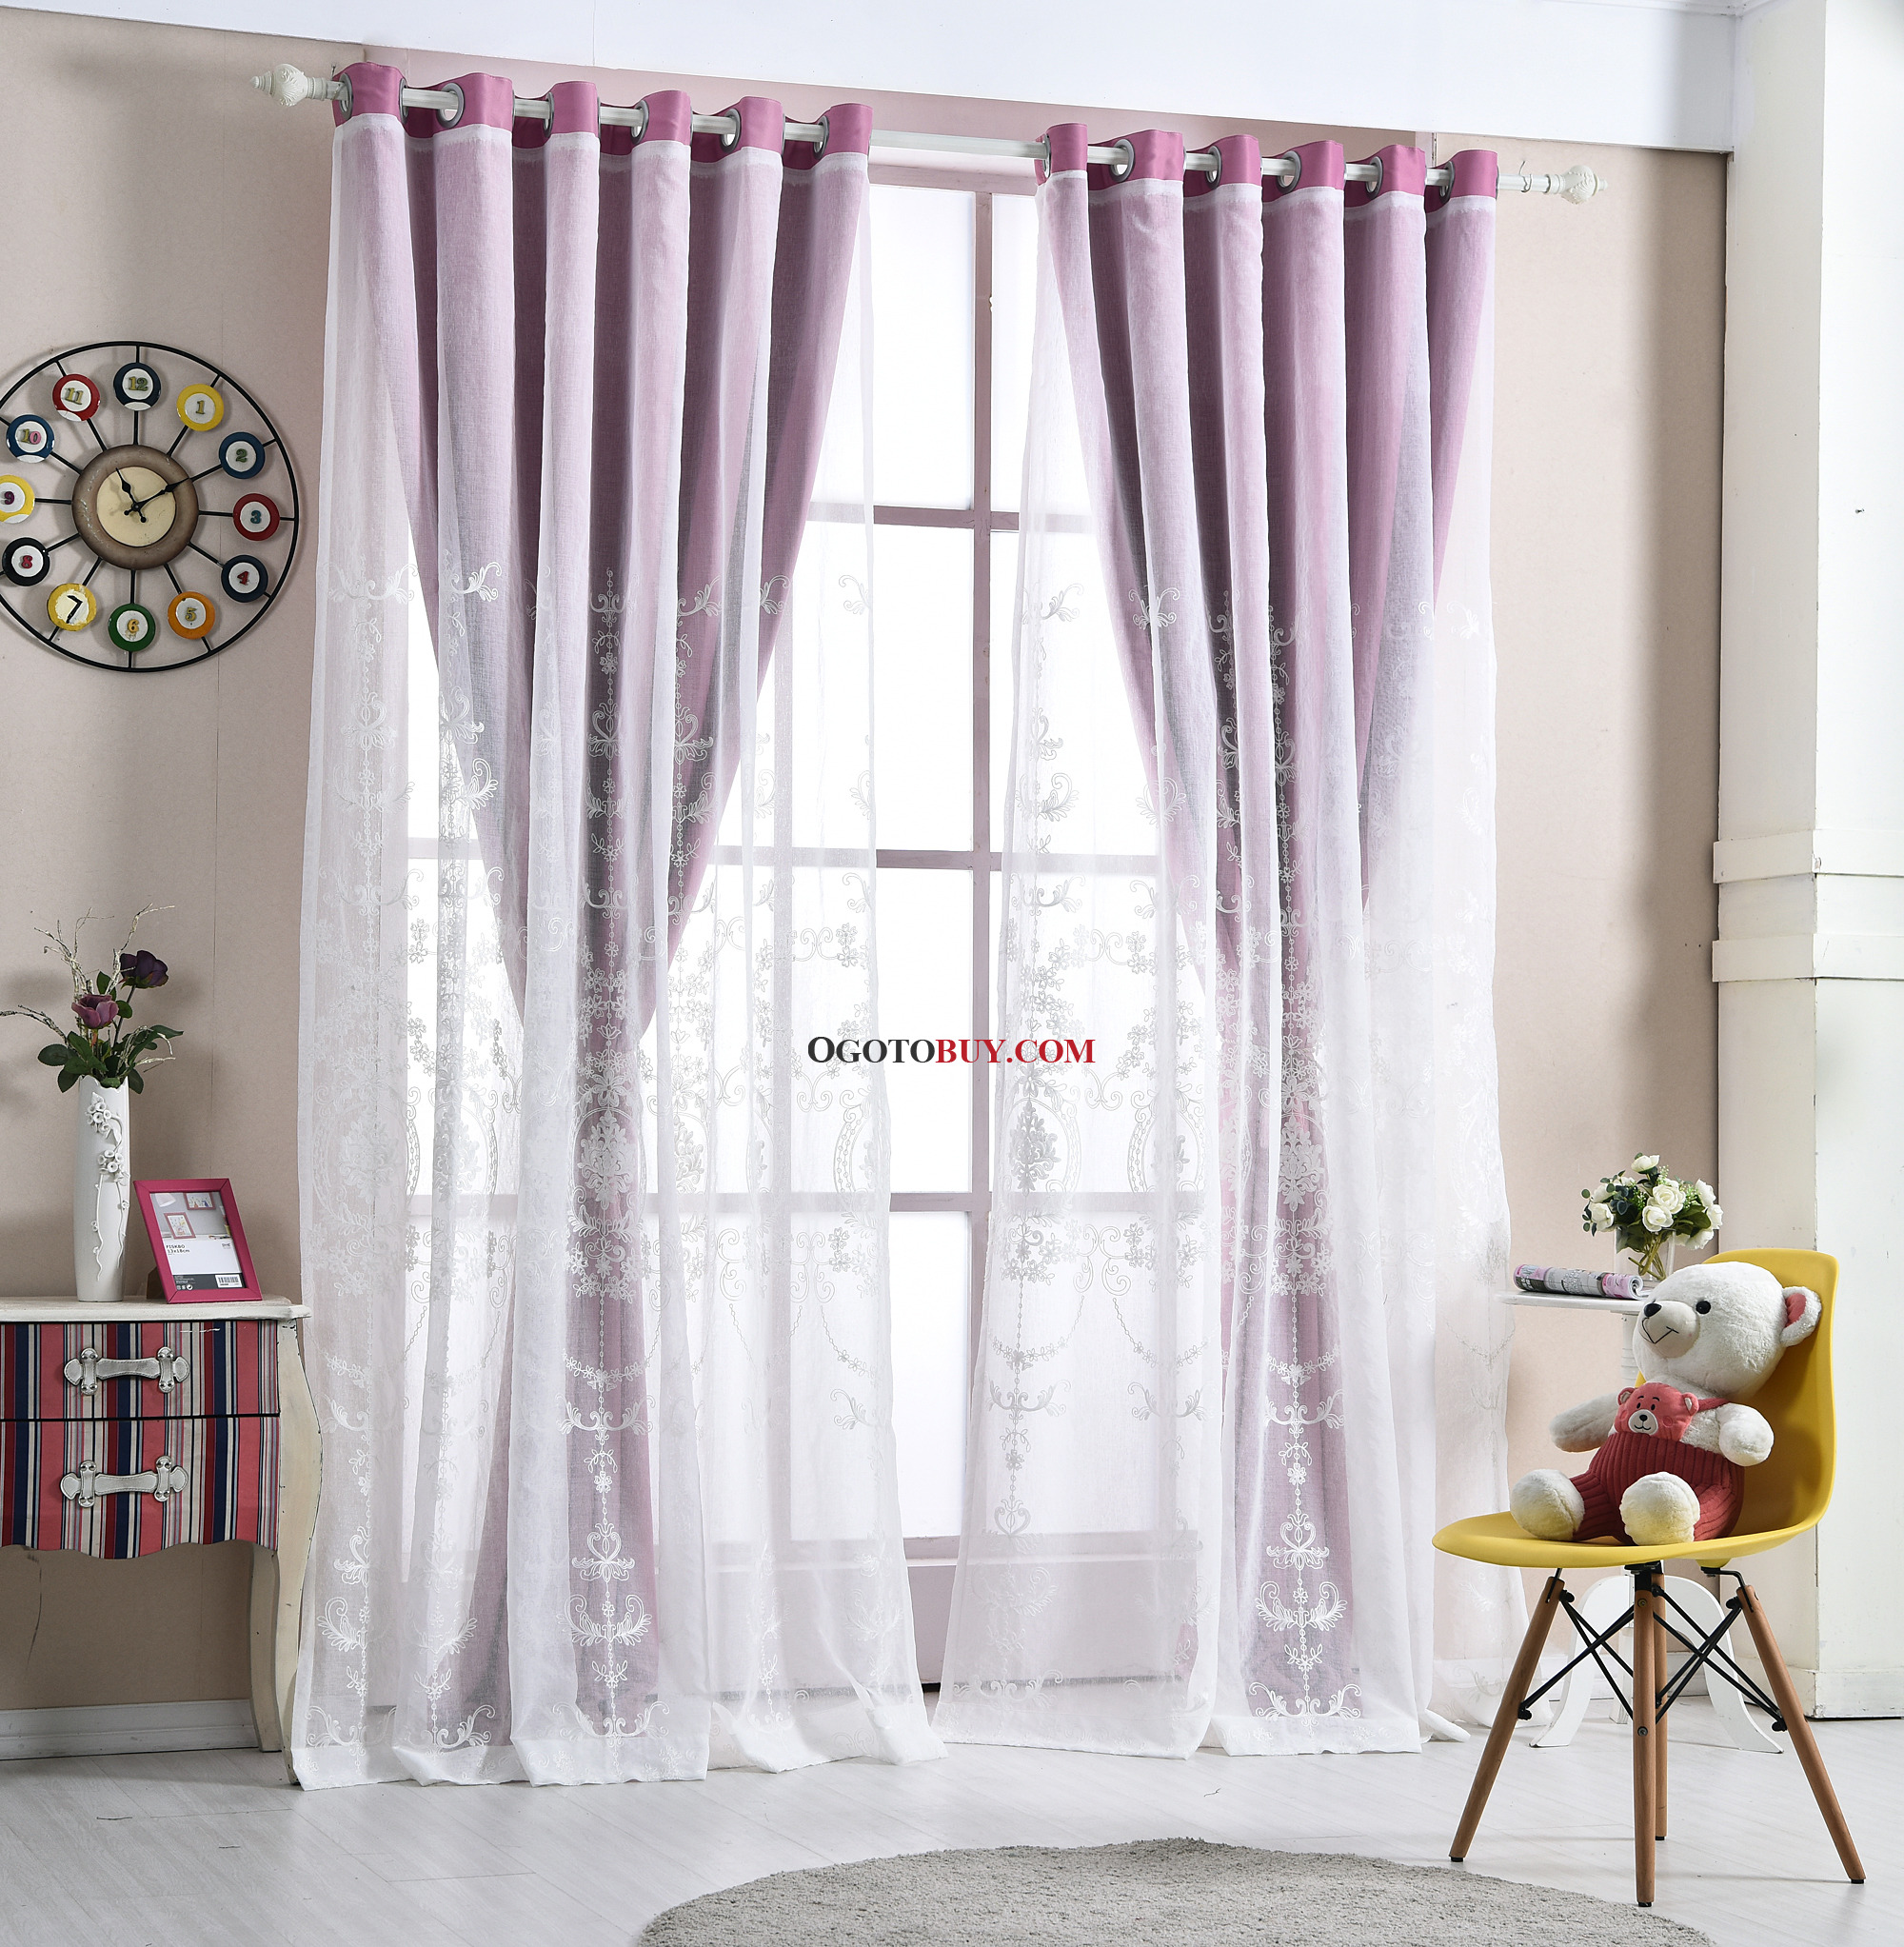 Good ... Curtains For Bedroom On Sale. Loading Zoom